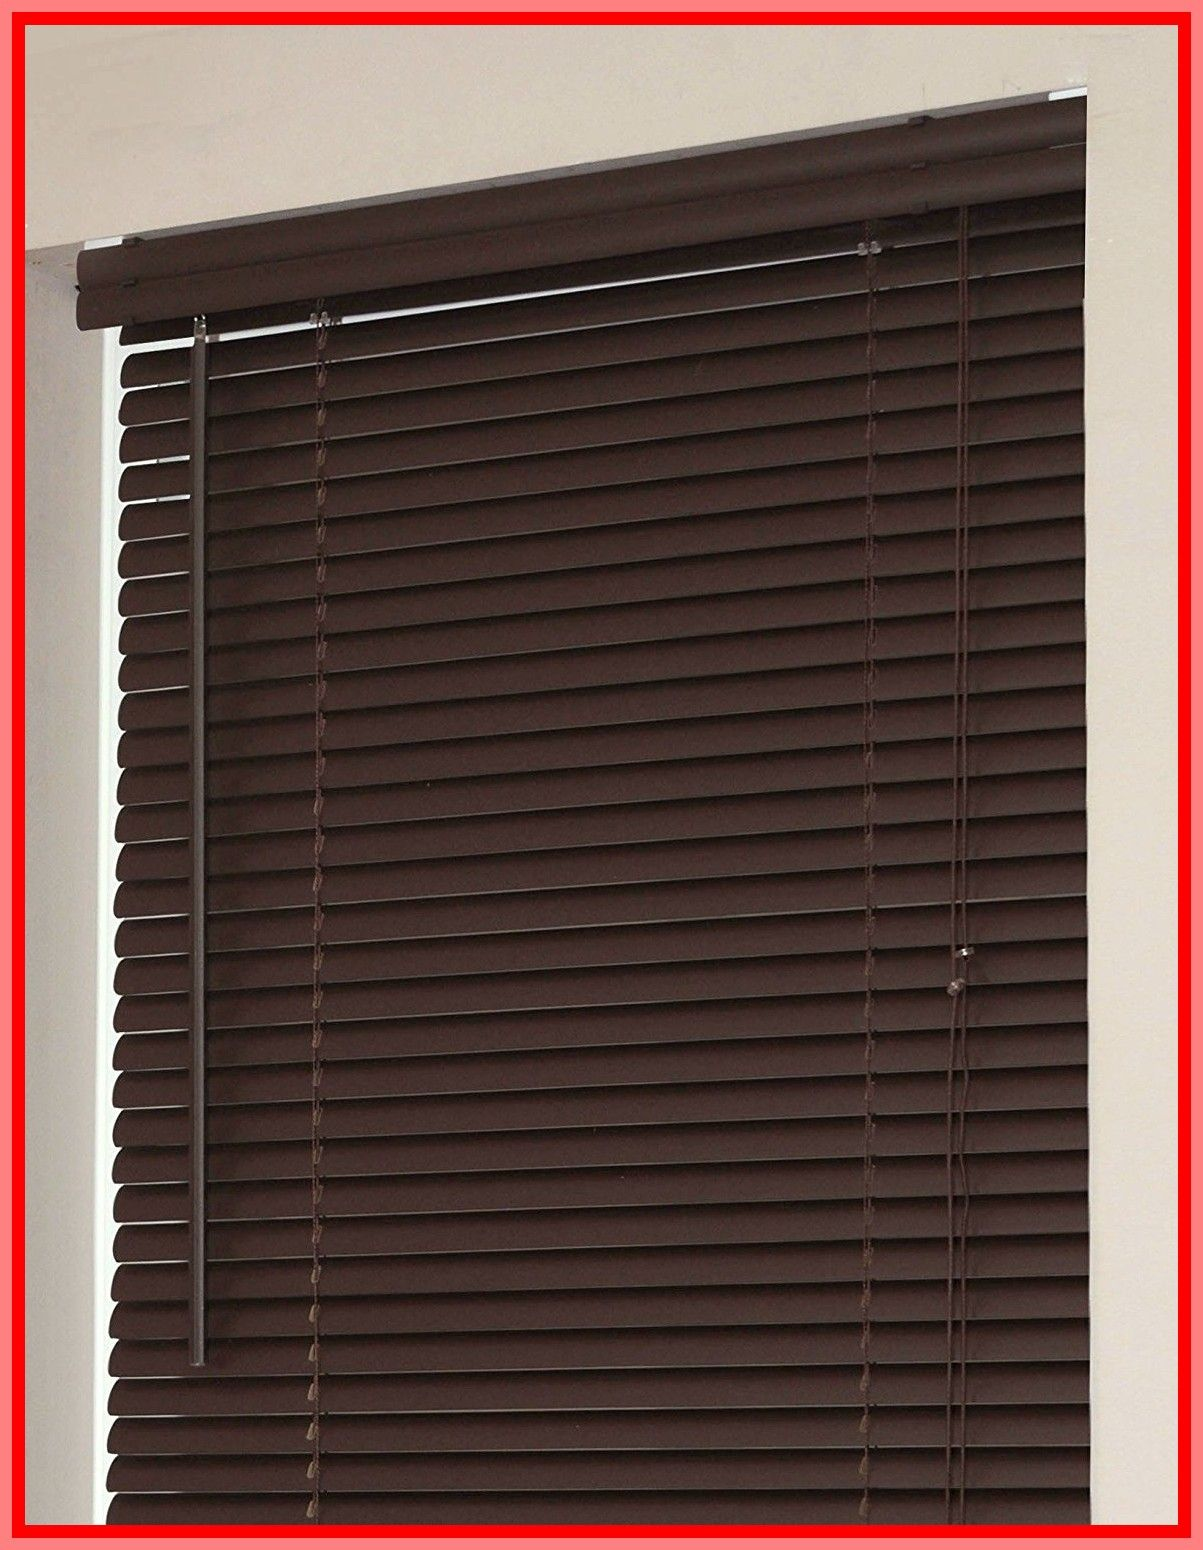 119 Reference Of Types Of Blinds Mini Blinds In 2020 Blinds Vinyl Blinds Mini Blinds